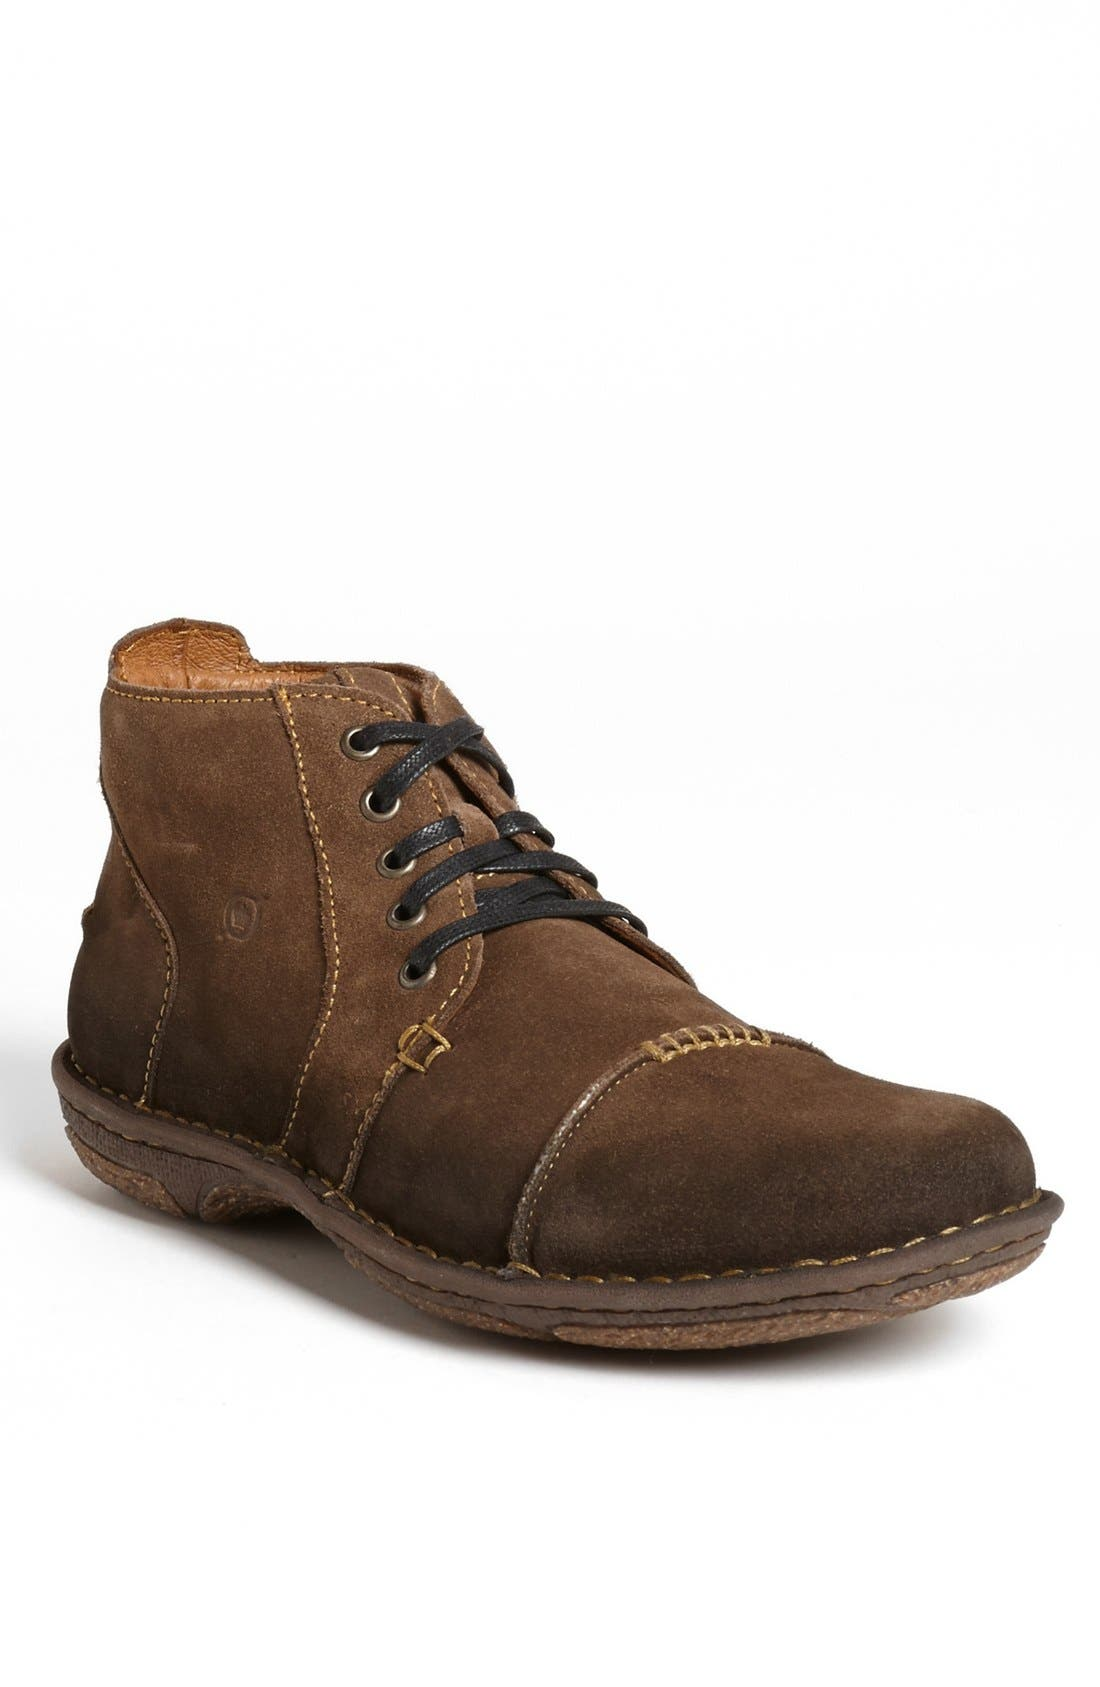 Main Image - Børn 'Edlan' Cap Toe Chukka Boot (Men)